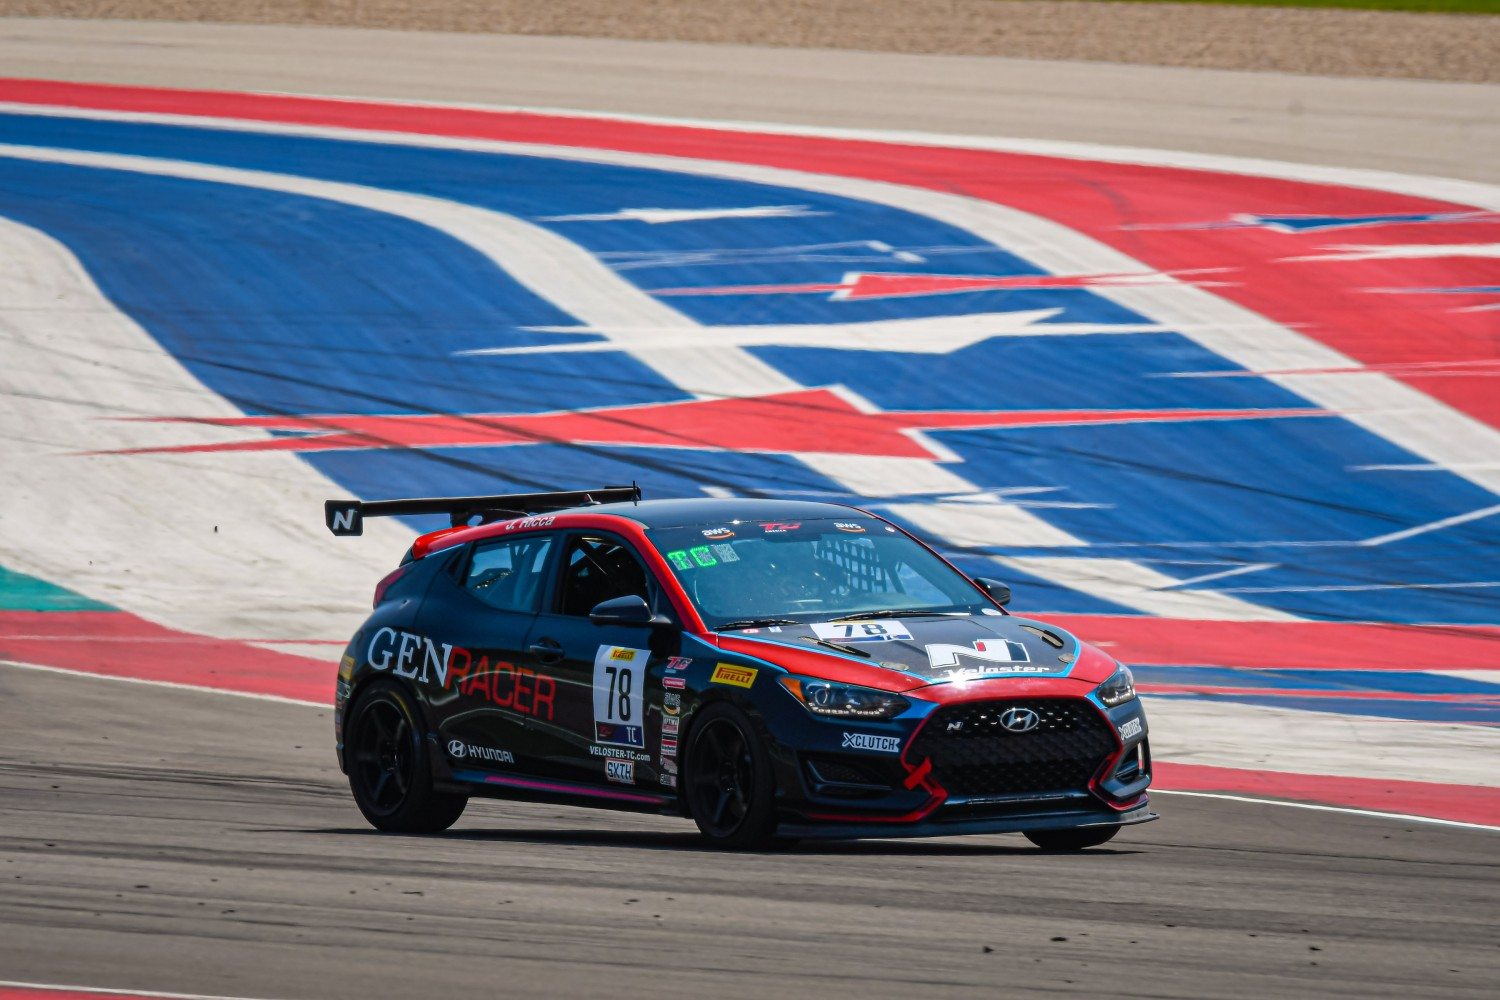 #78 Hyundai Veloster N of Jeff Ricca, GenRacer/Ricca Autosport, TC, SRO America, Circuit of the Americas, Austin TX, September 2020.  | SRO Motorsports Group